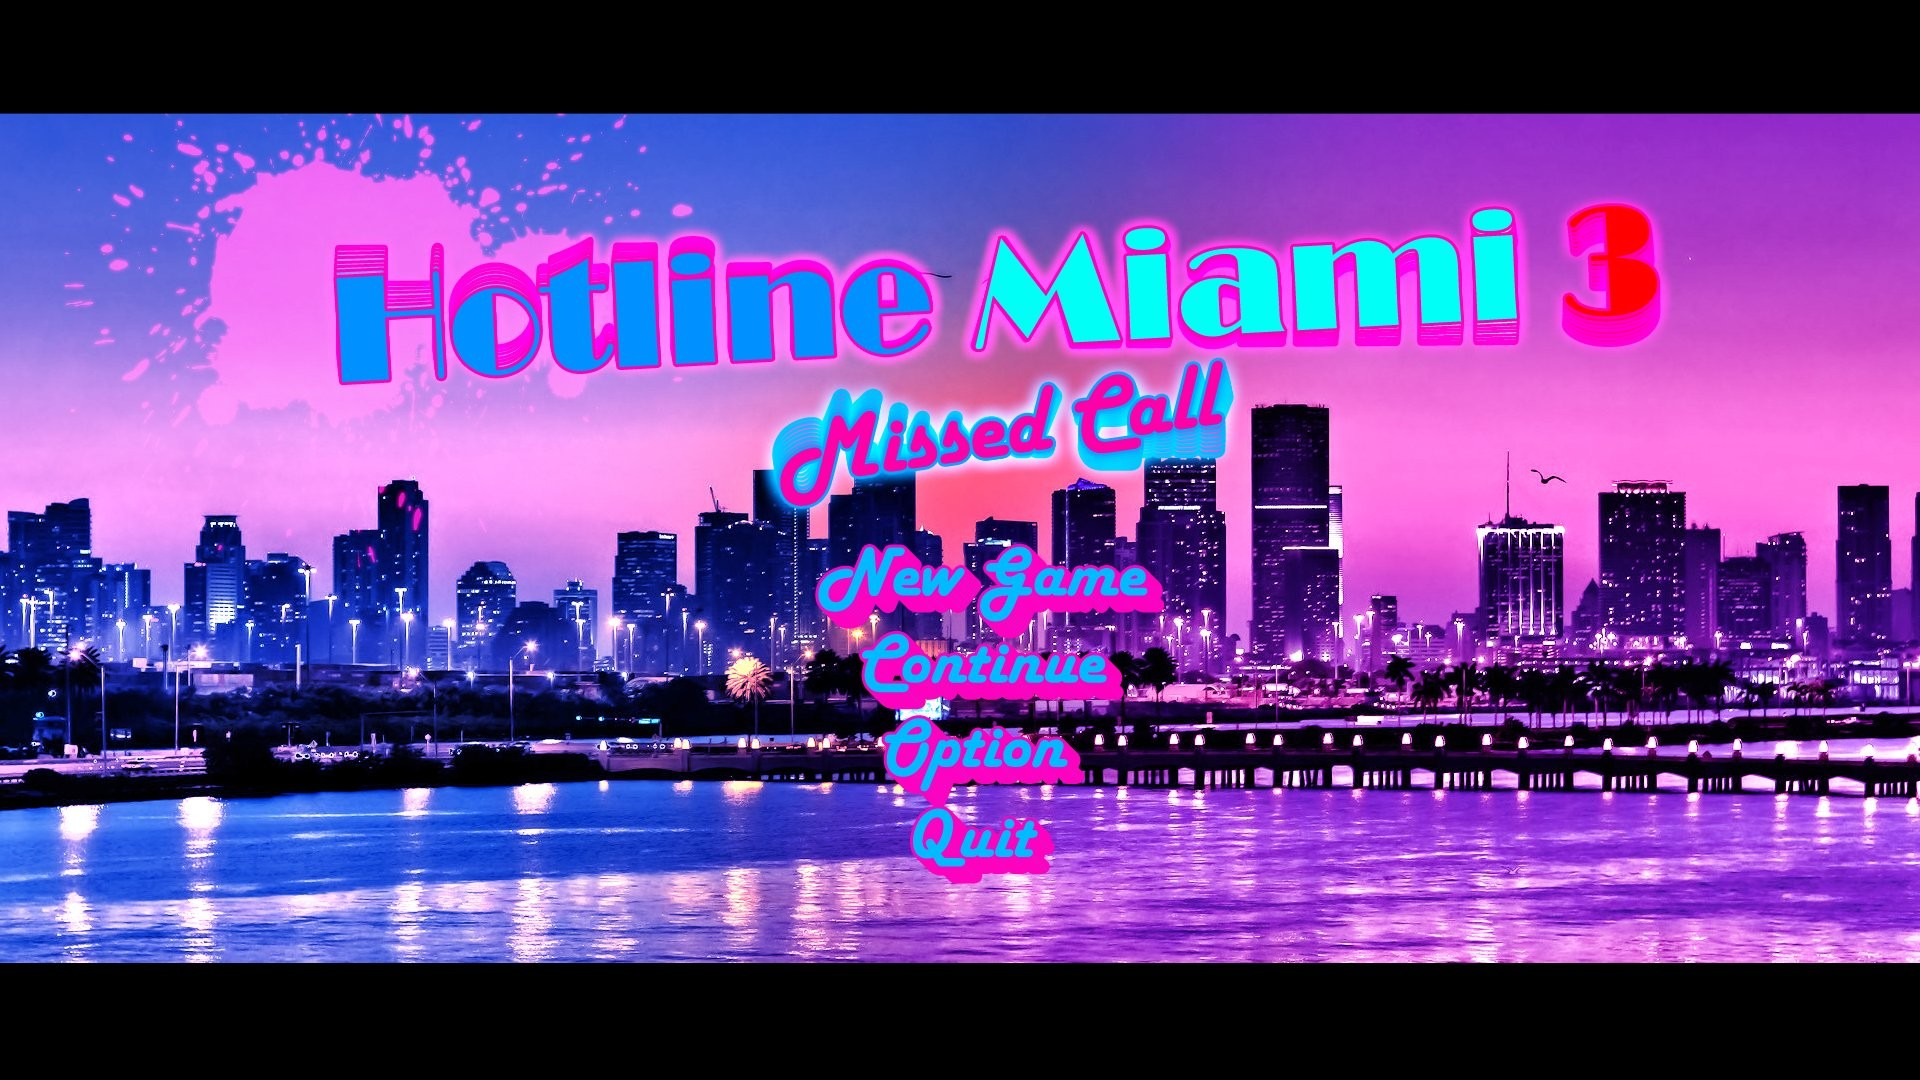 HOTLINE-MIAMI action shooter fighting hotline miami payday poster wallpaper      833197   WallpaperUP